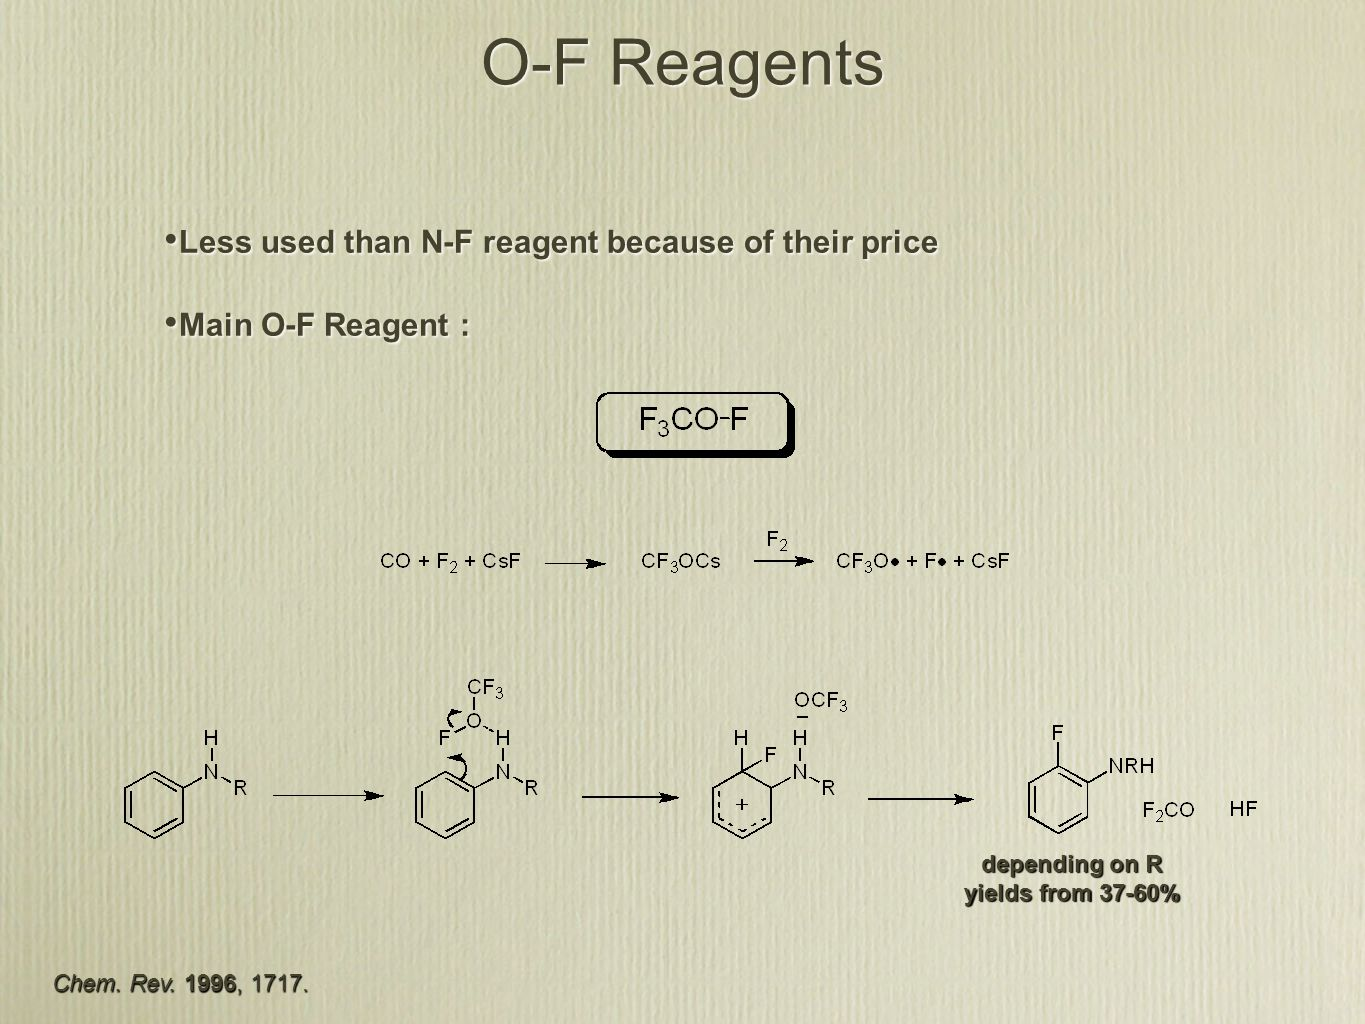 O-F Reagents Less used than N-F reagent because of their price Main O-F Reagent : Less used than N-F reagent because of their price Main O-F Reagent : depending on R yields from 37-60% Chem.